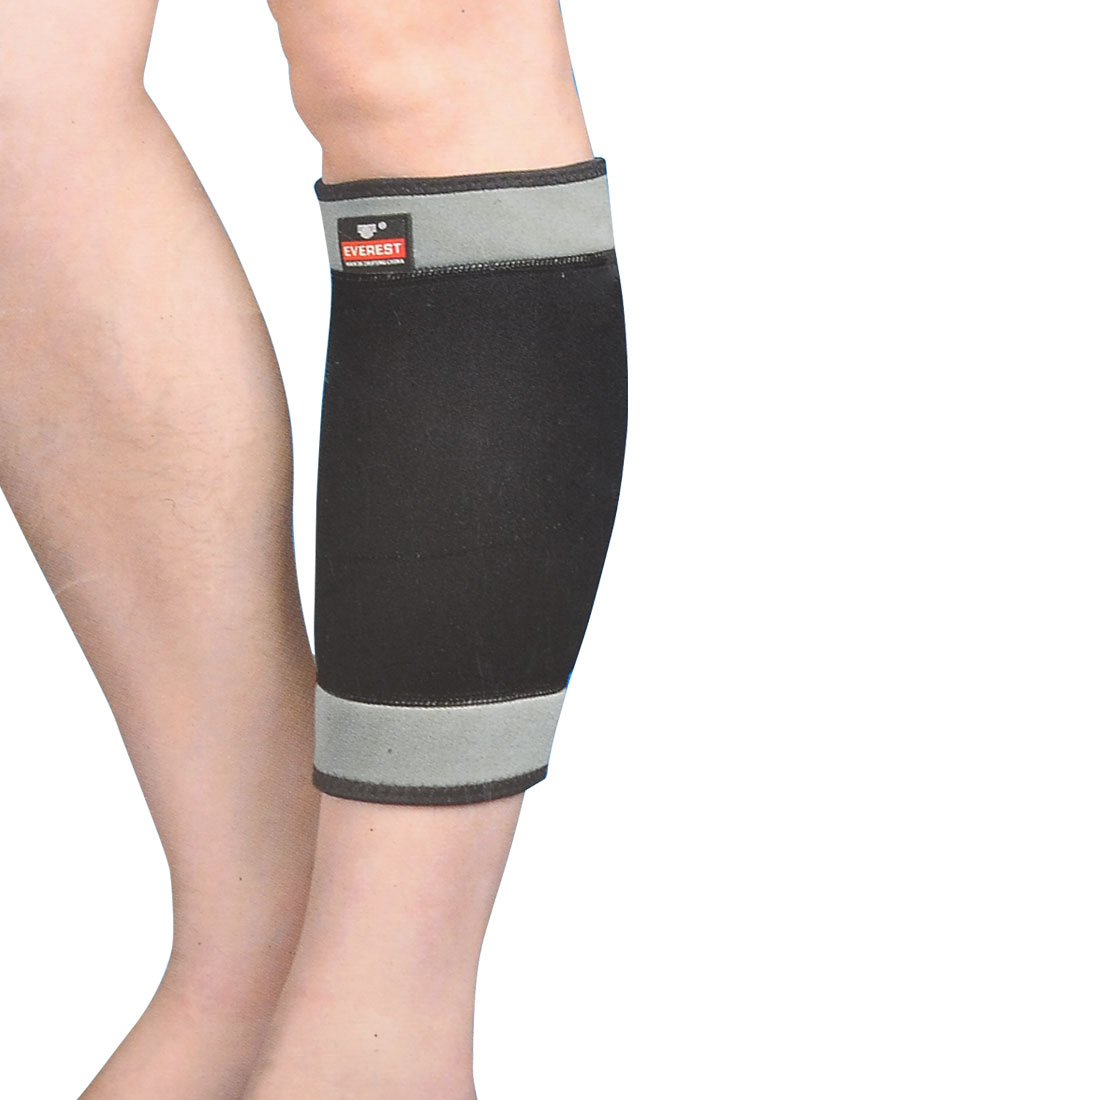 Sports Protective Black Gray Neoprene Elastic Calf Sleeve Support Shield